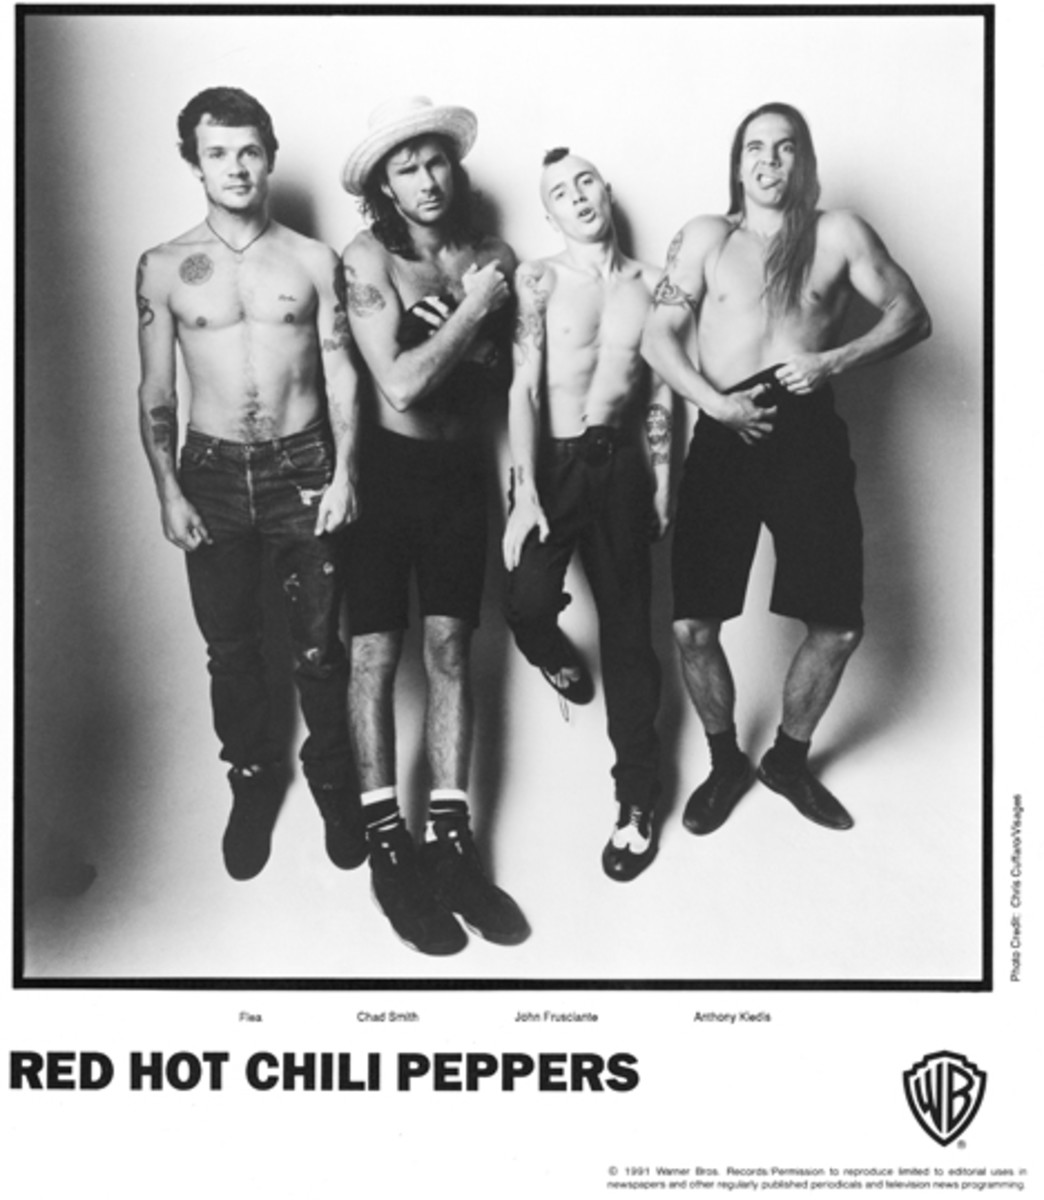 Red Hot Chili Peppers 1991